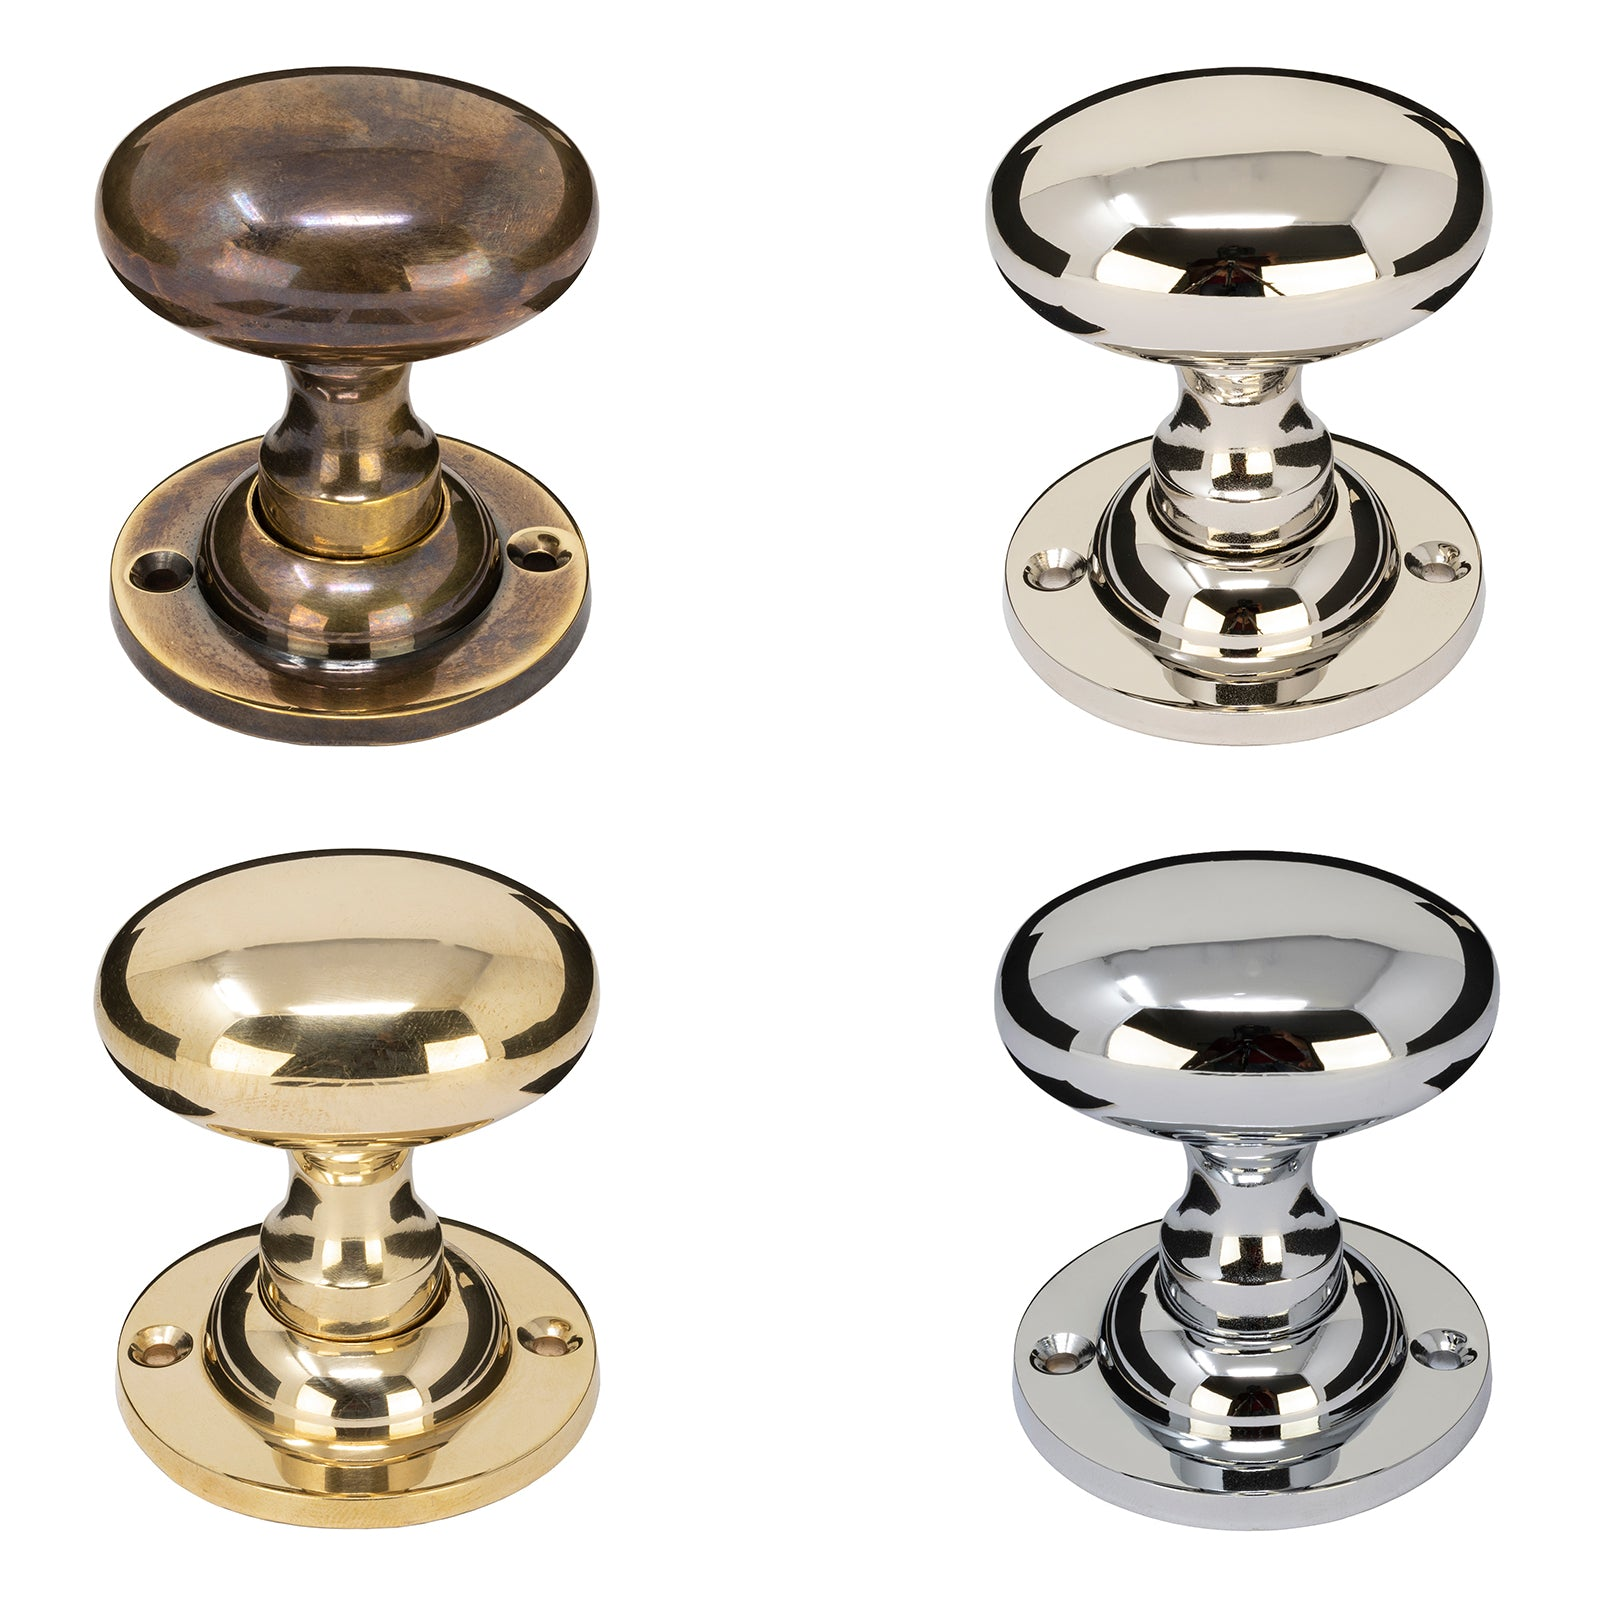 Oval Brass Door Knobs in brass, bronze, chrome & nickel finishes